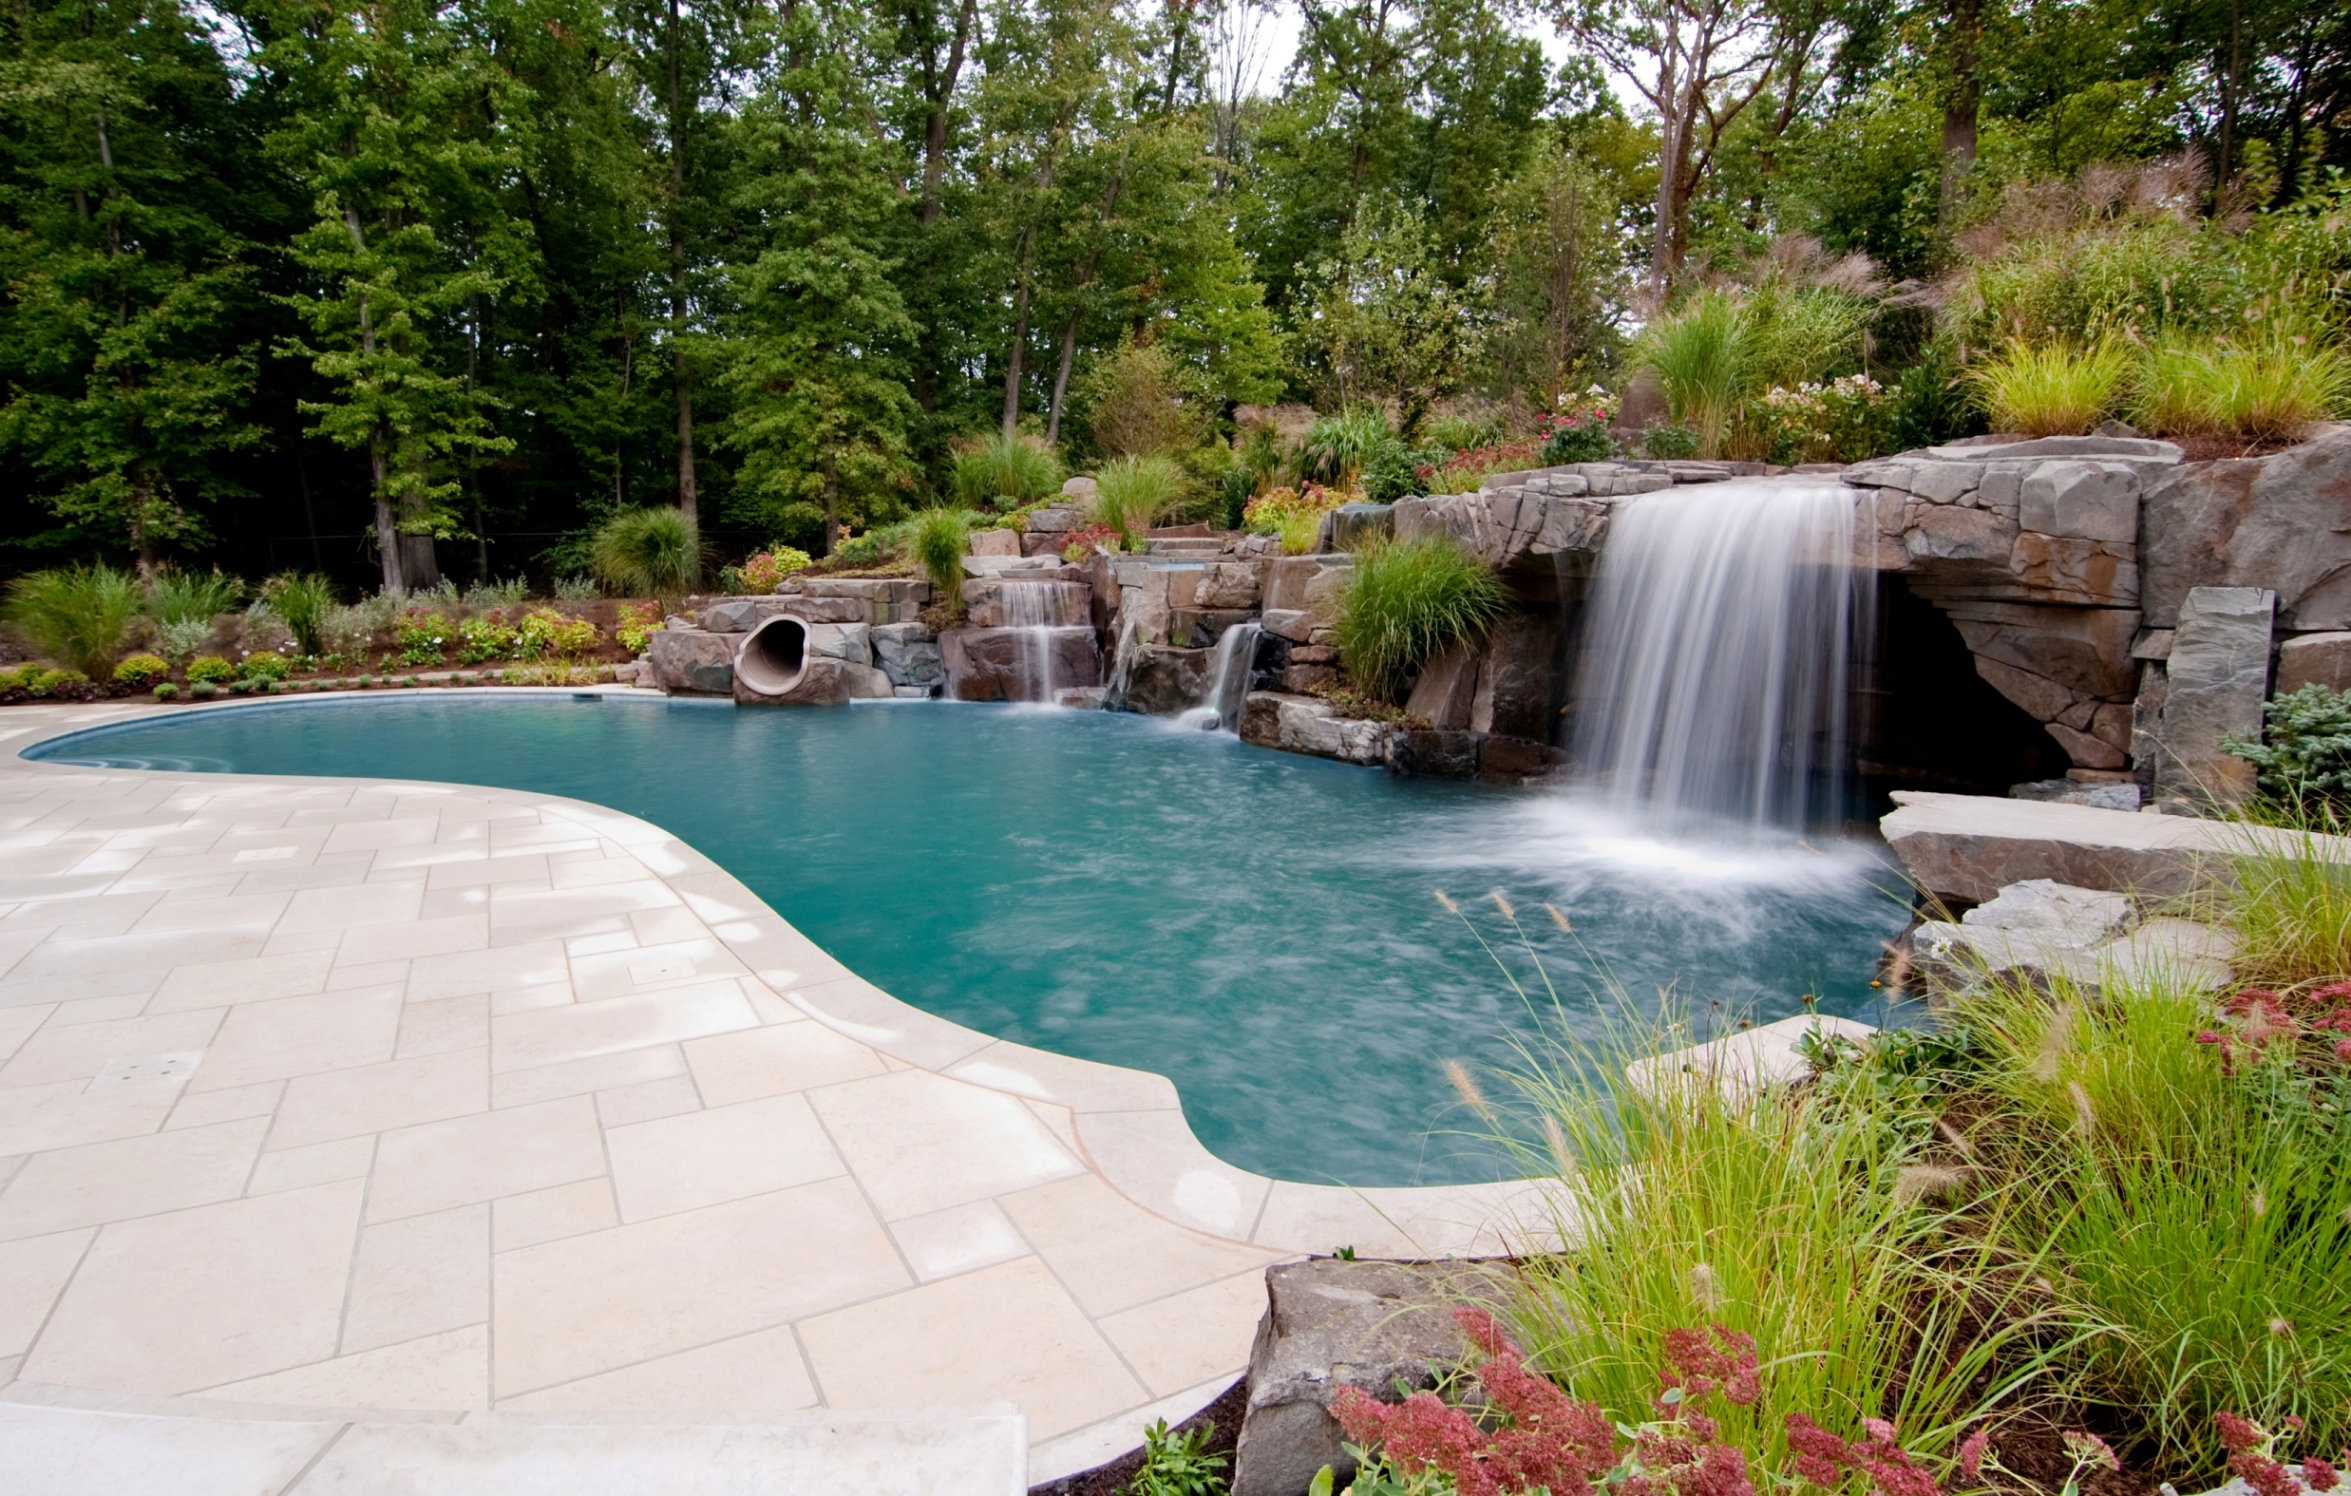 Swimming Inground Pools : New jersey inground pool company earns international award